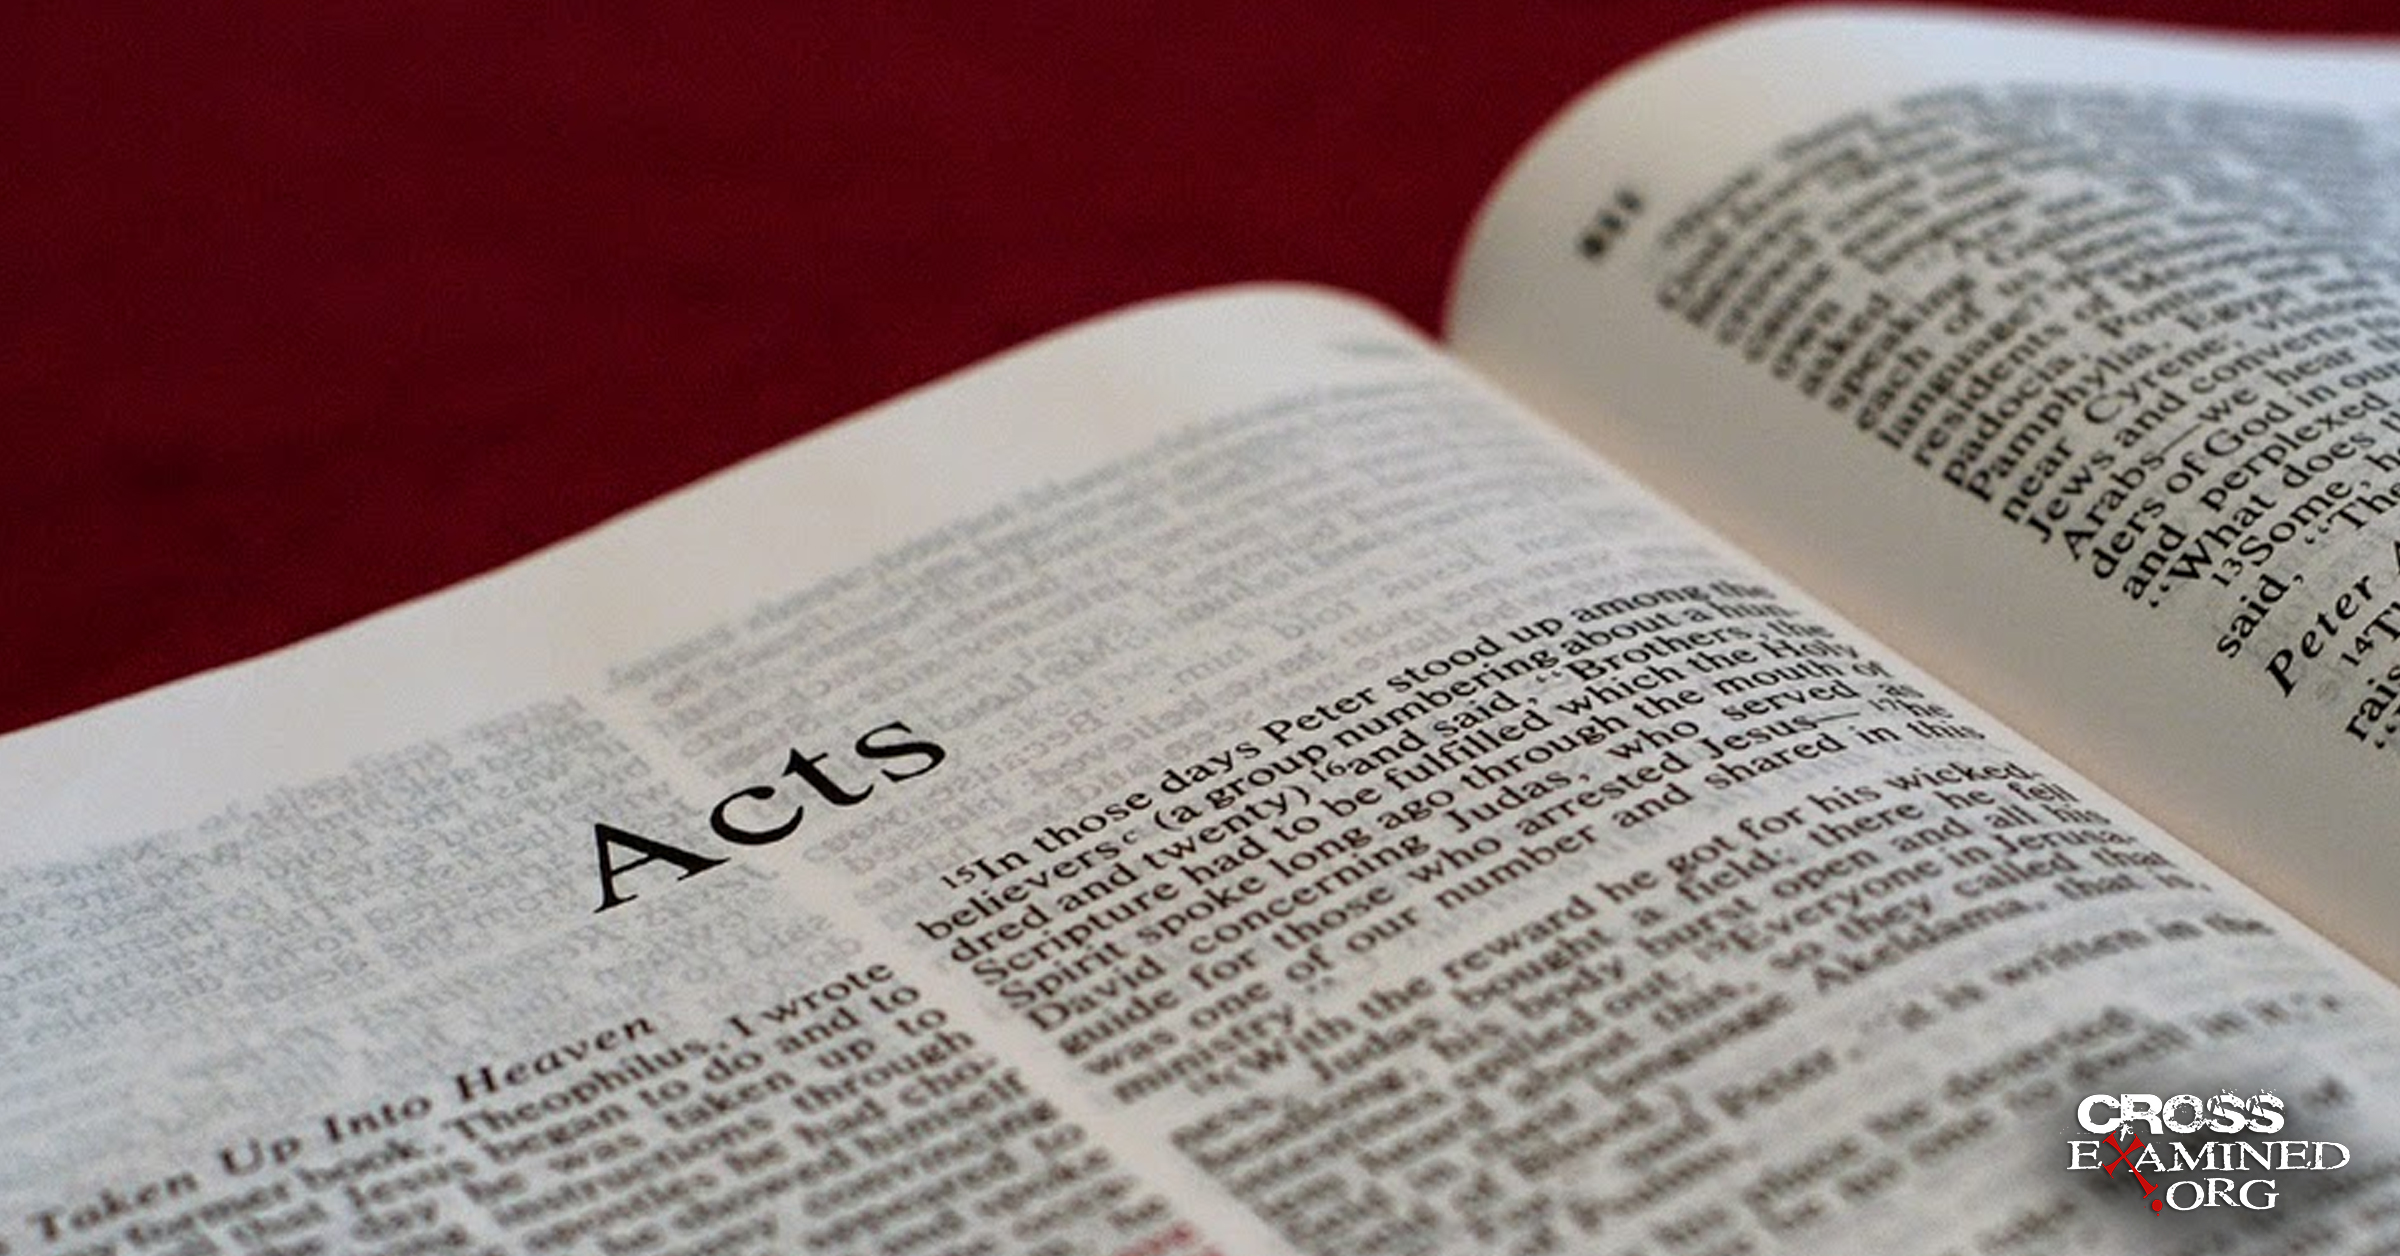 The Speeches in Acts: Are They Authentic?